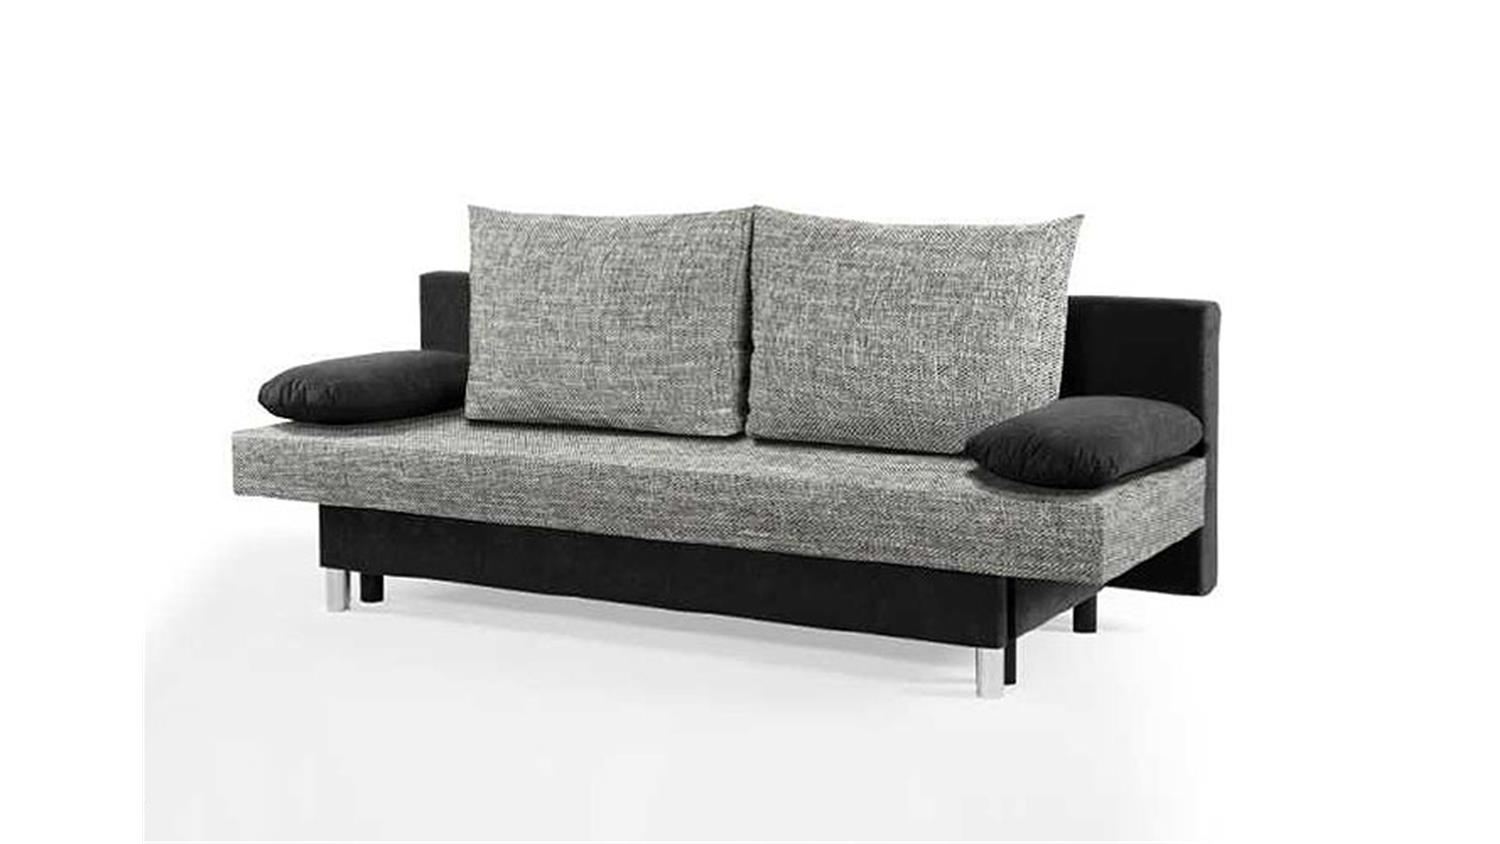 schlafsofa jelly sofa in schwarz und grau mit bettkasten. Black Bedroom Furniture Sets. Home Design Ideas